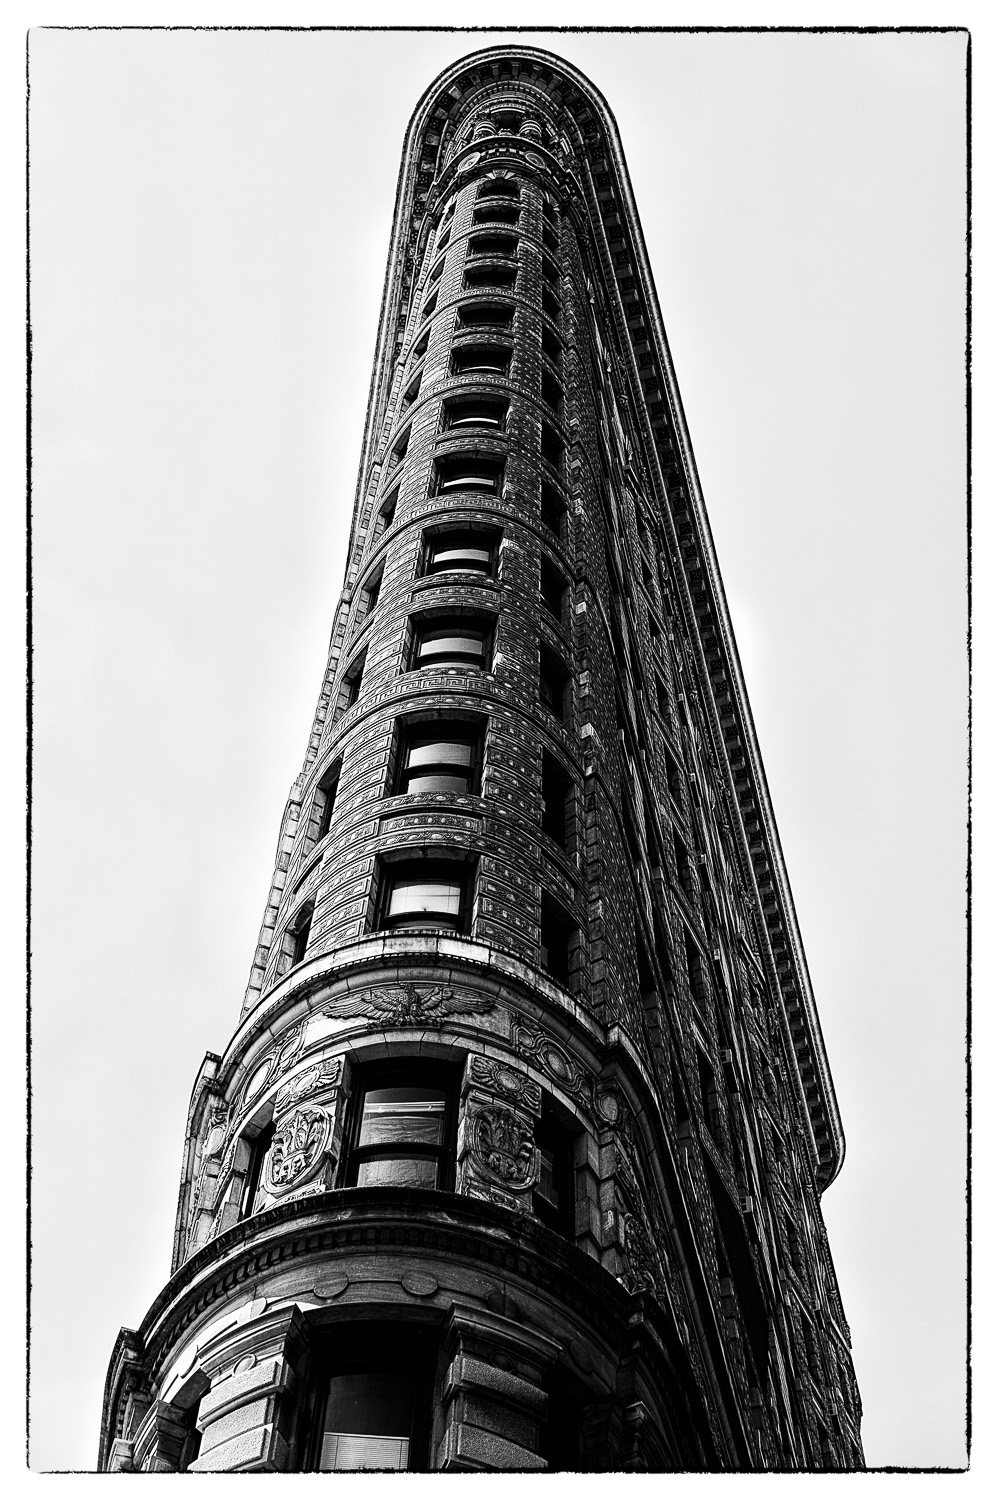 2012-05-28_NYC-Flatiron_26-Edit.jpg